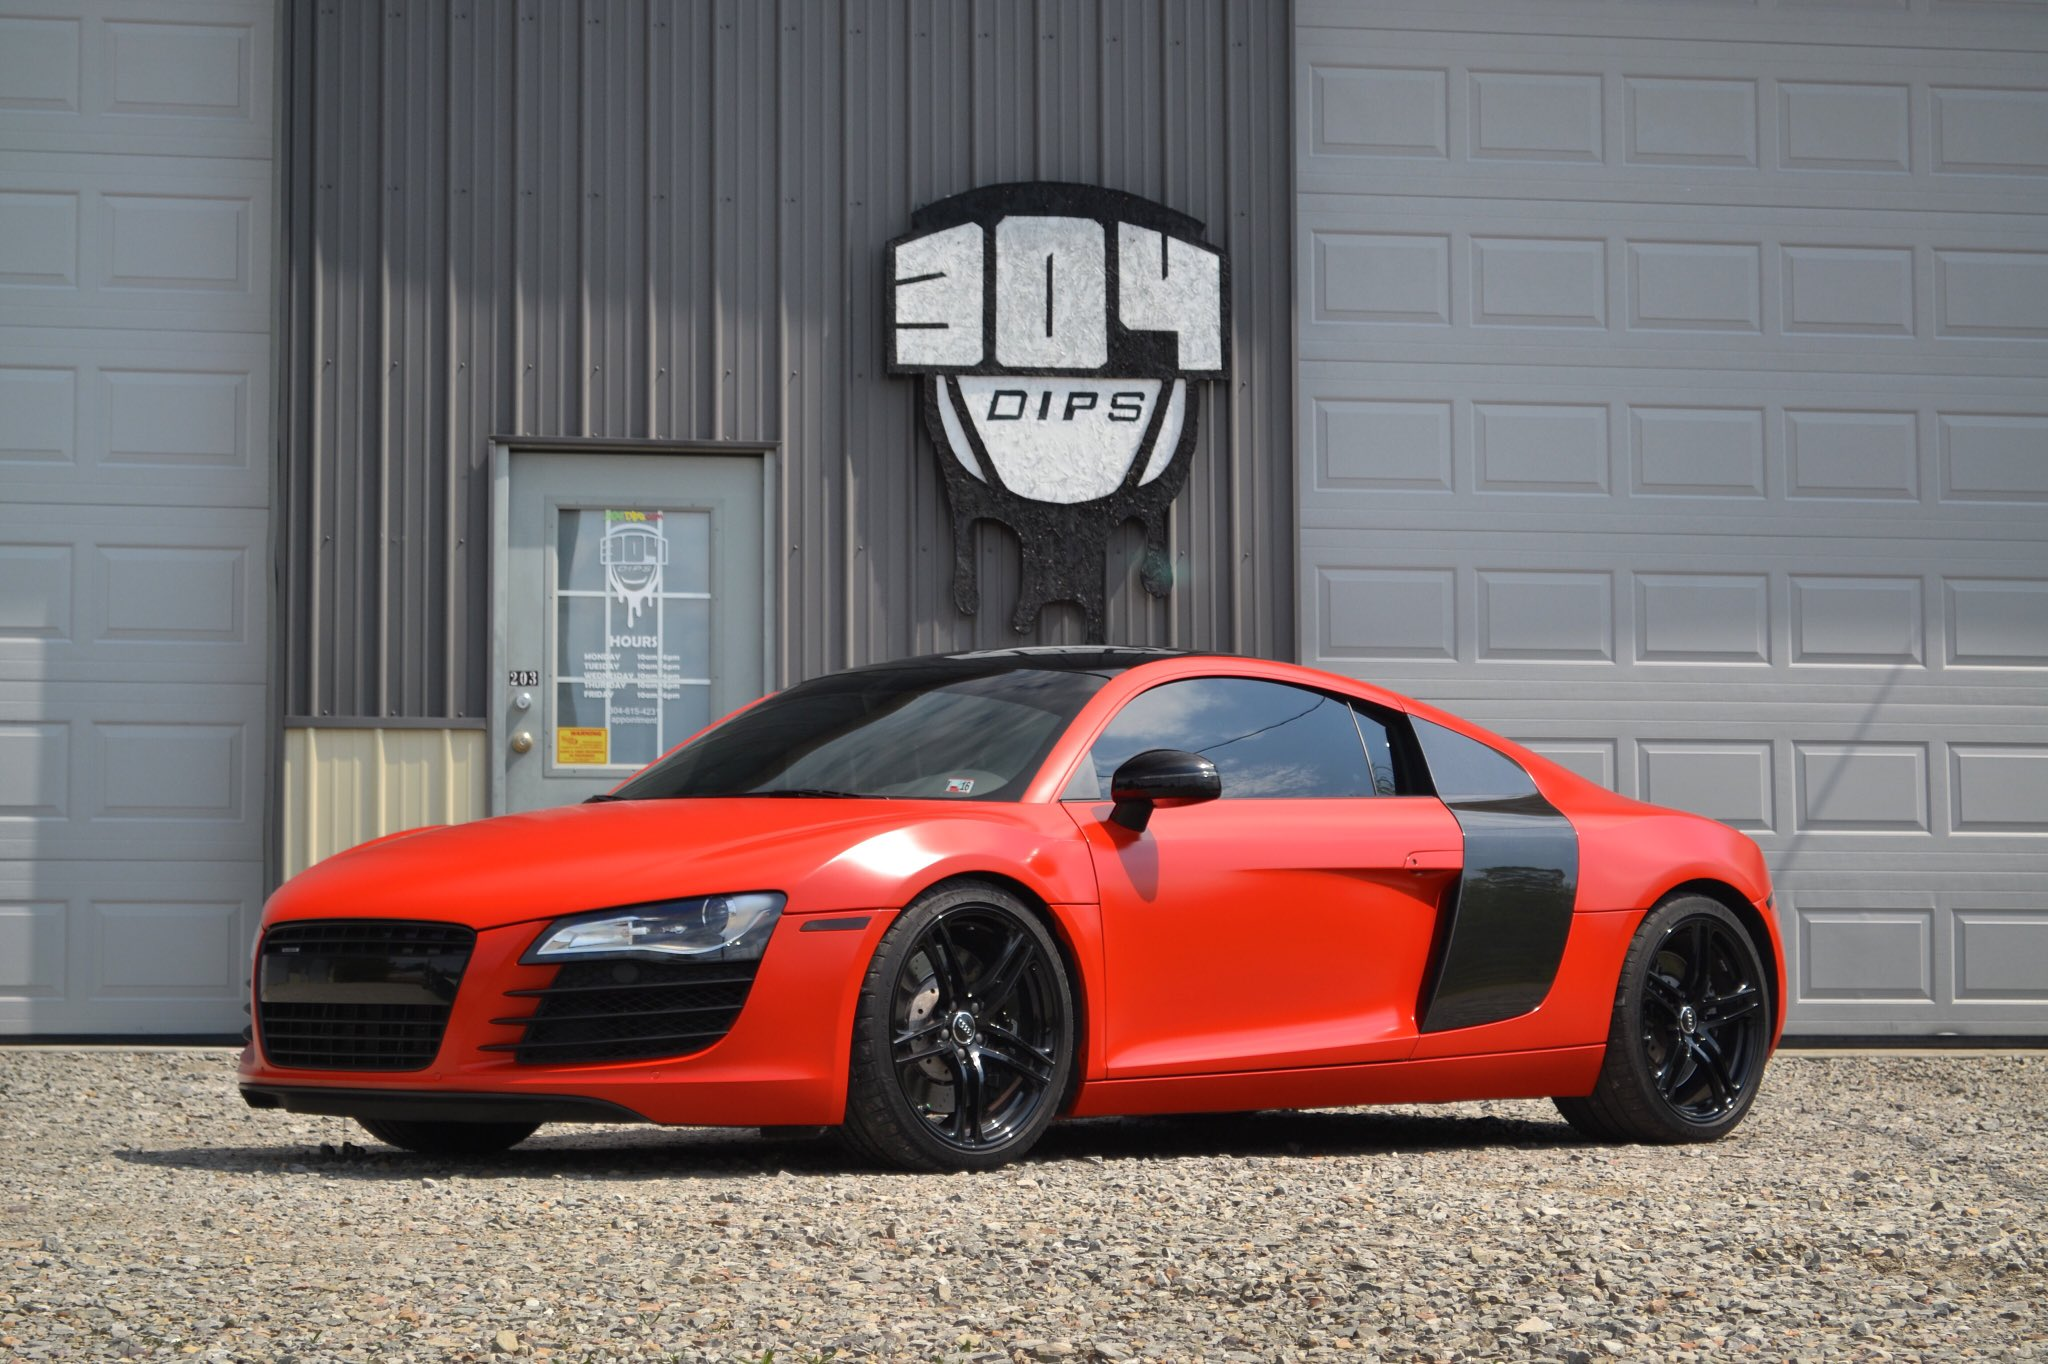 304 dips on twitter pure red matte autoflex audi r8 by 304 dips with gloss black roof mirrors. Black Bedroom Furniture Sets. Home Design Ideas